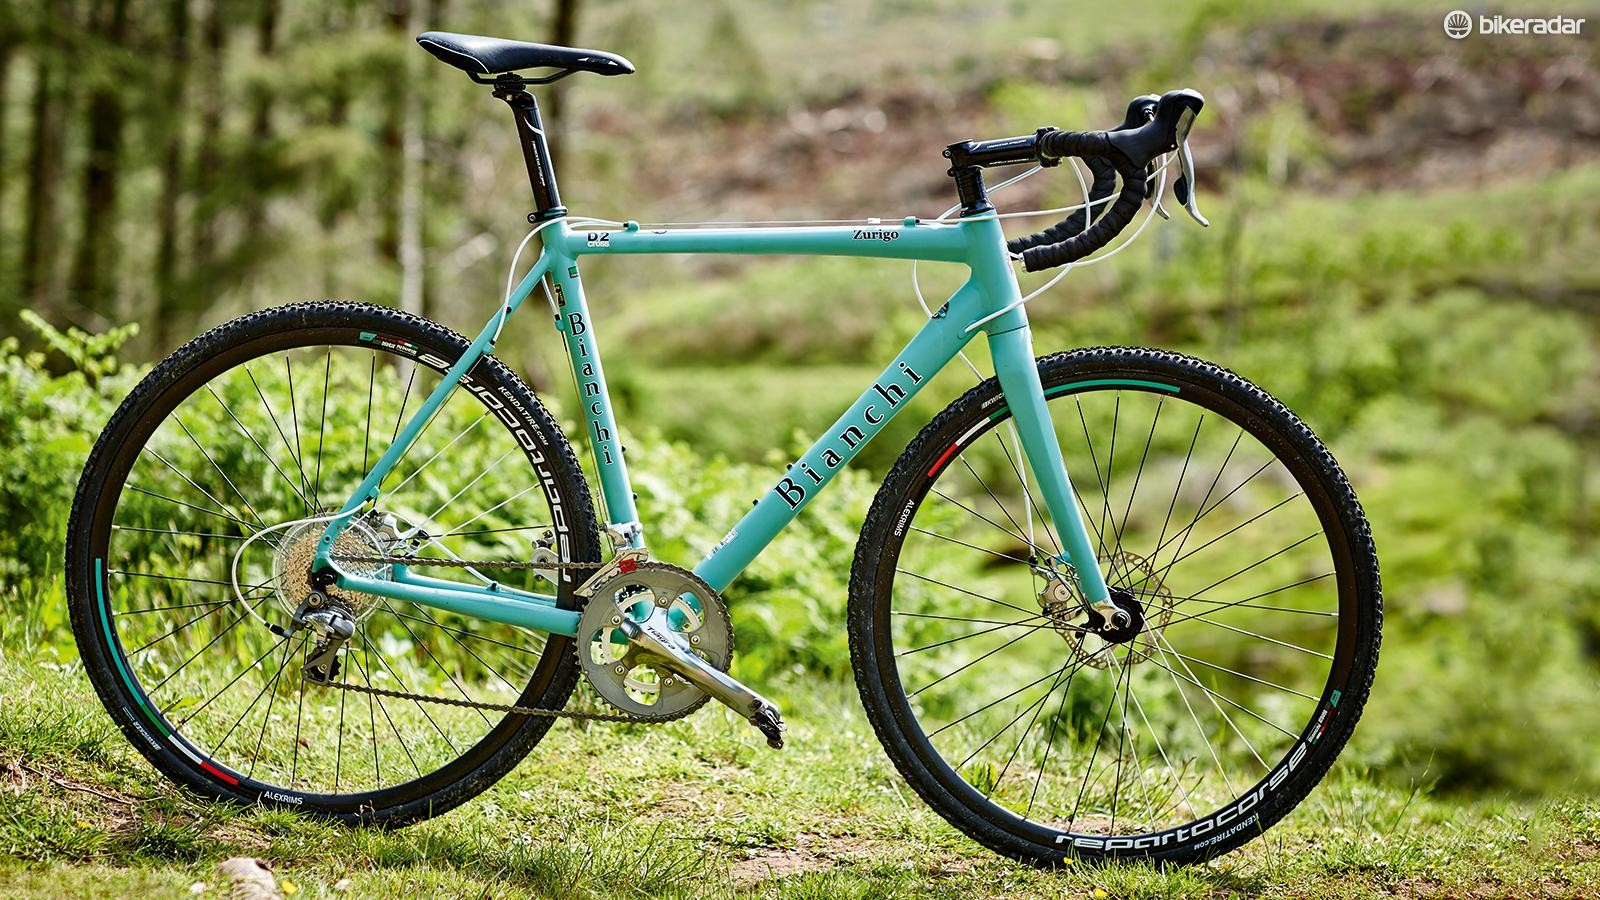 Bianchi's Zurigo is very versatile. It has a wide range of gears, and fittings for 'guards, a rear rack and a pair of bottle cages